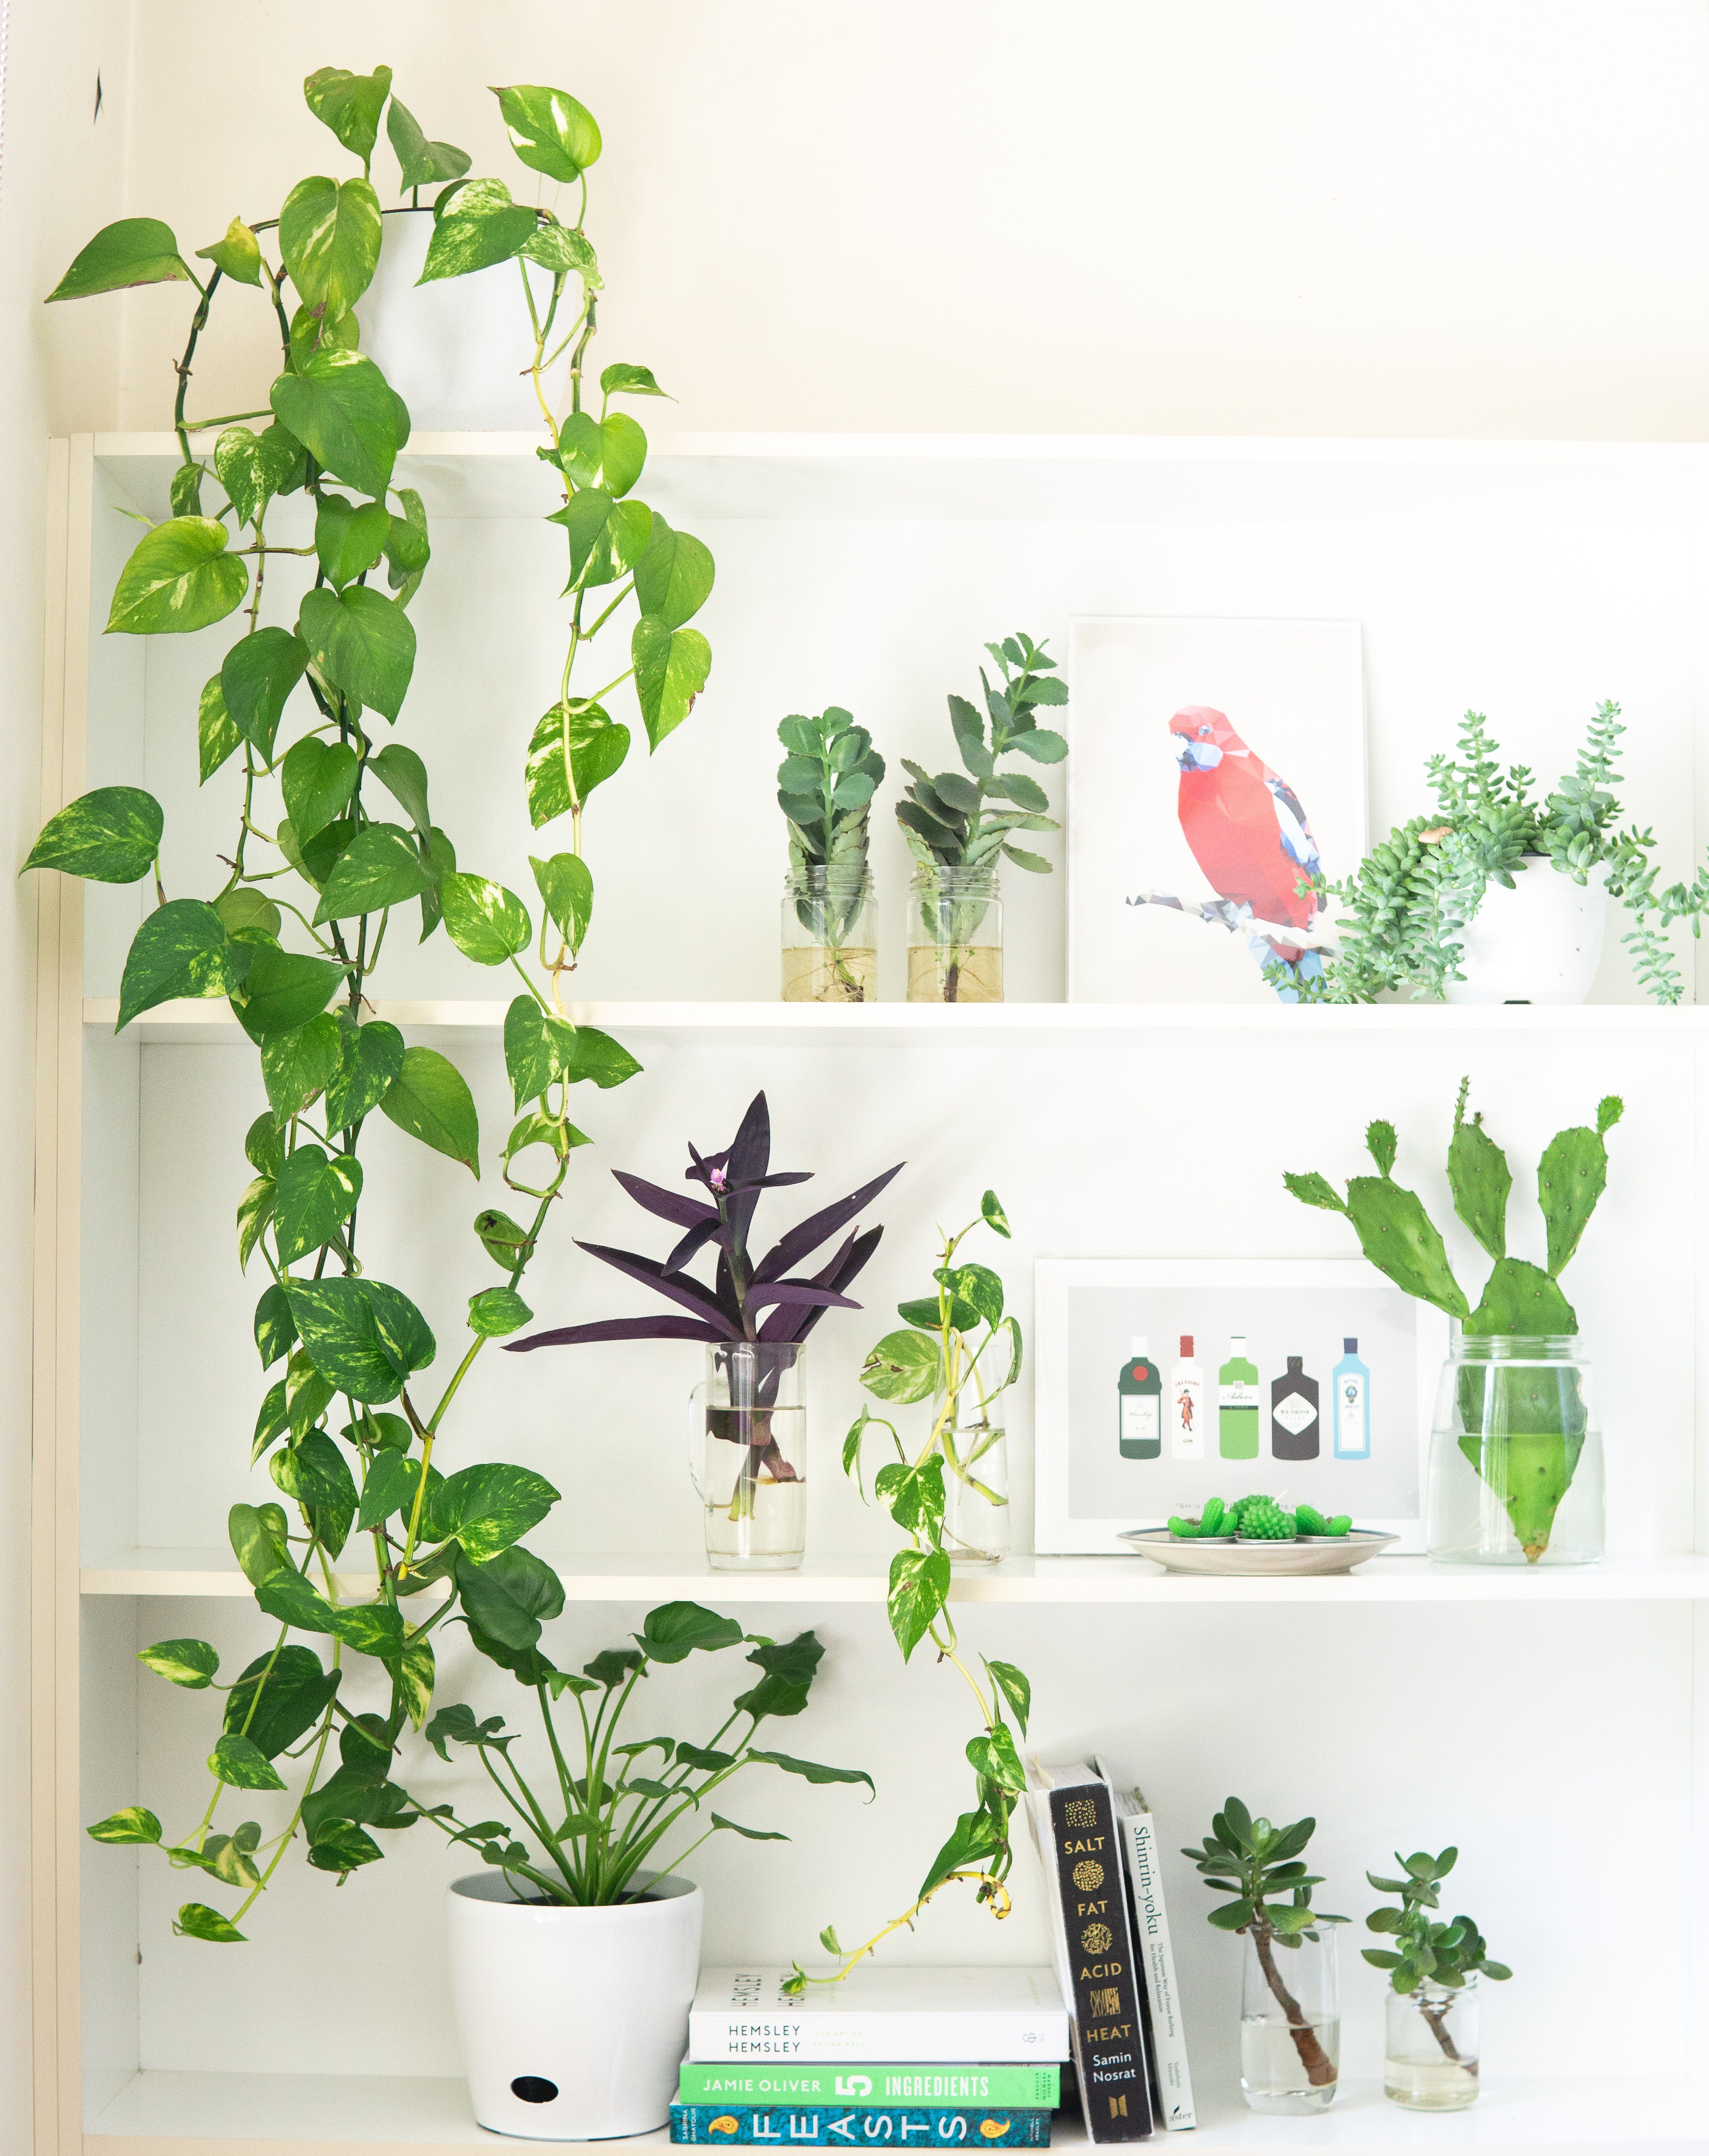 houseplants that are great for beginners on a shelf